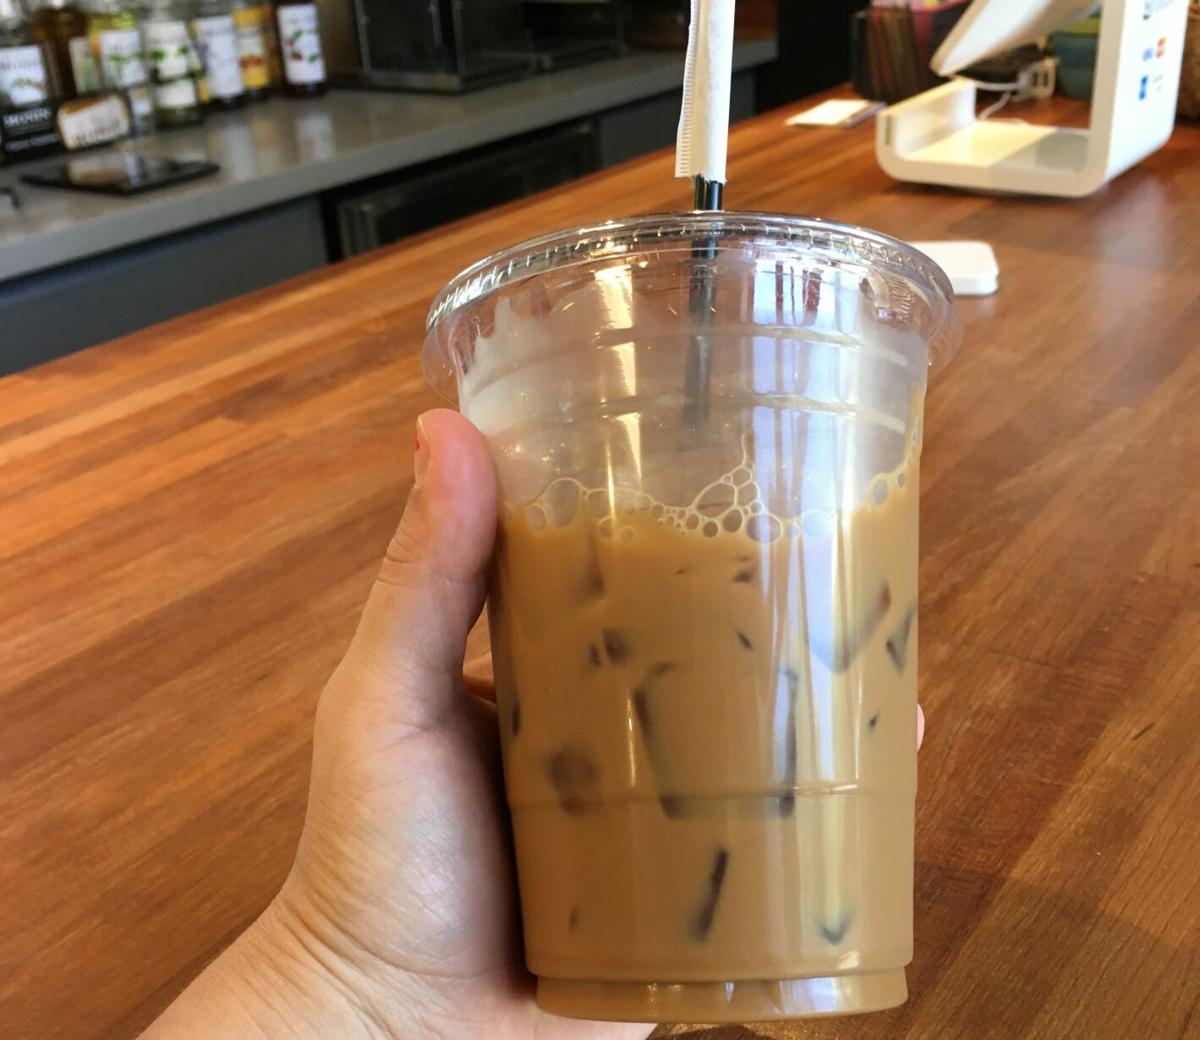 Final Product - Vietnamese coffee at Eleven cafe